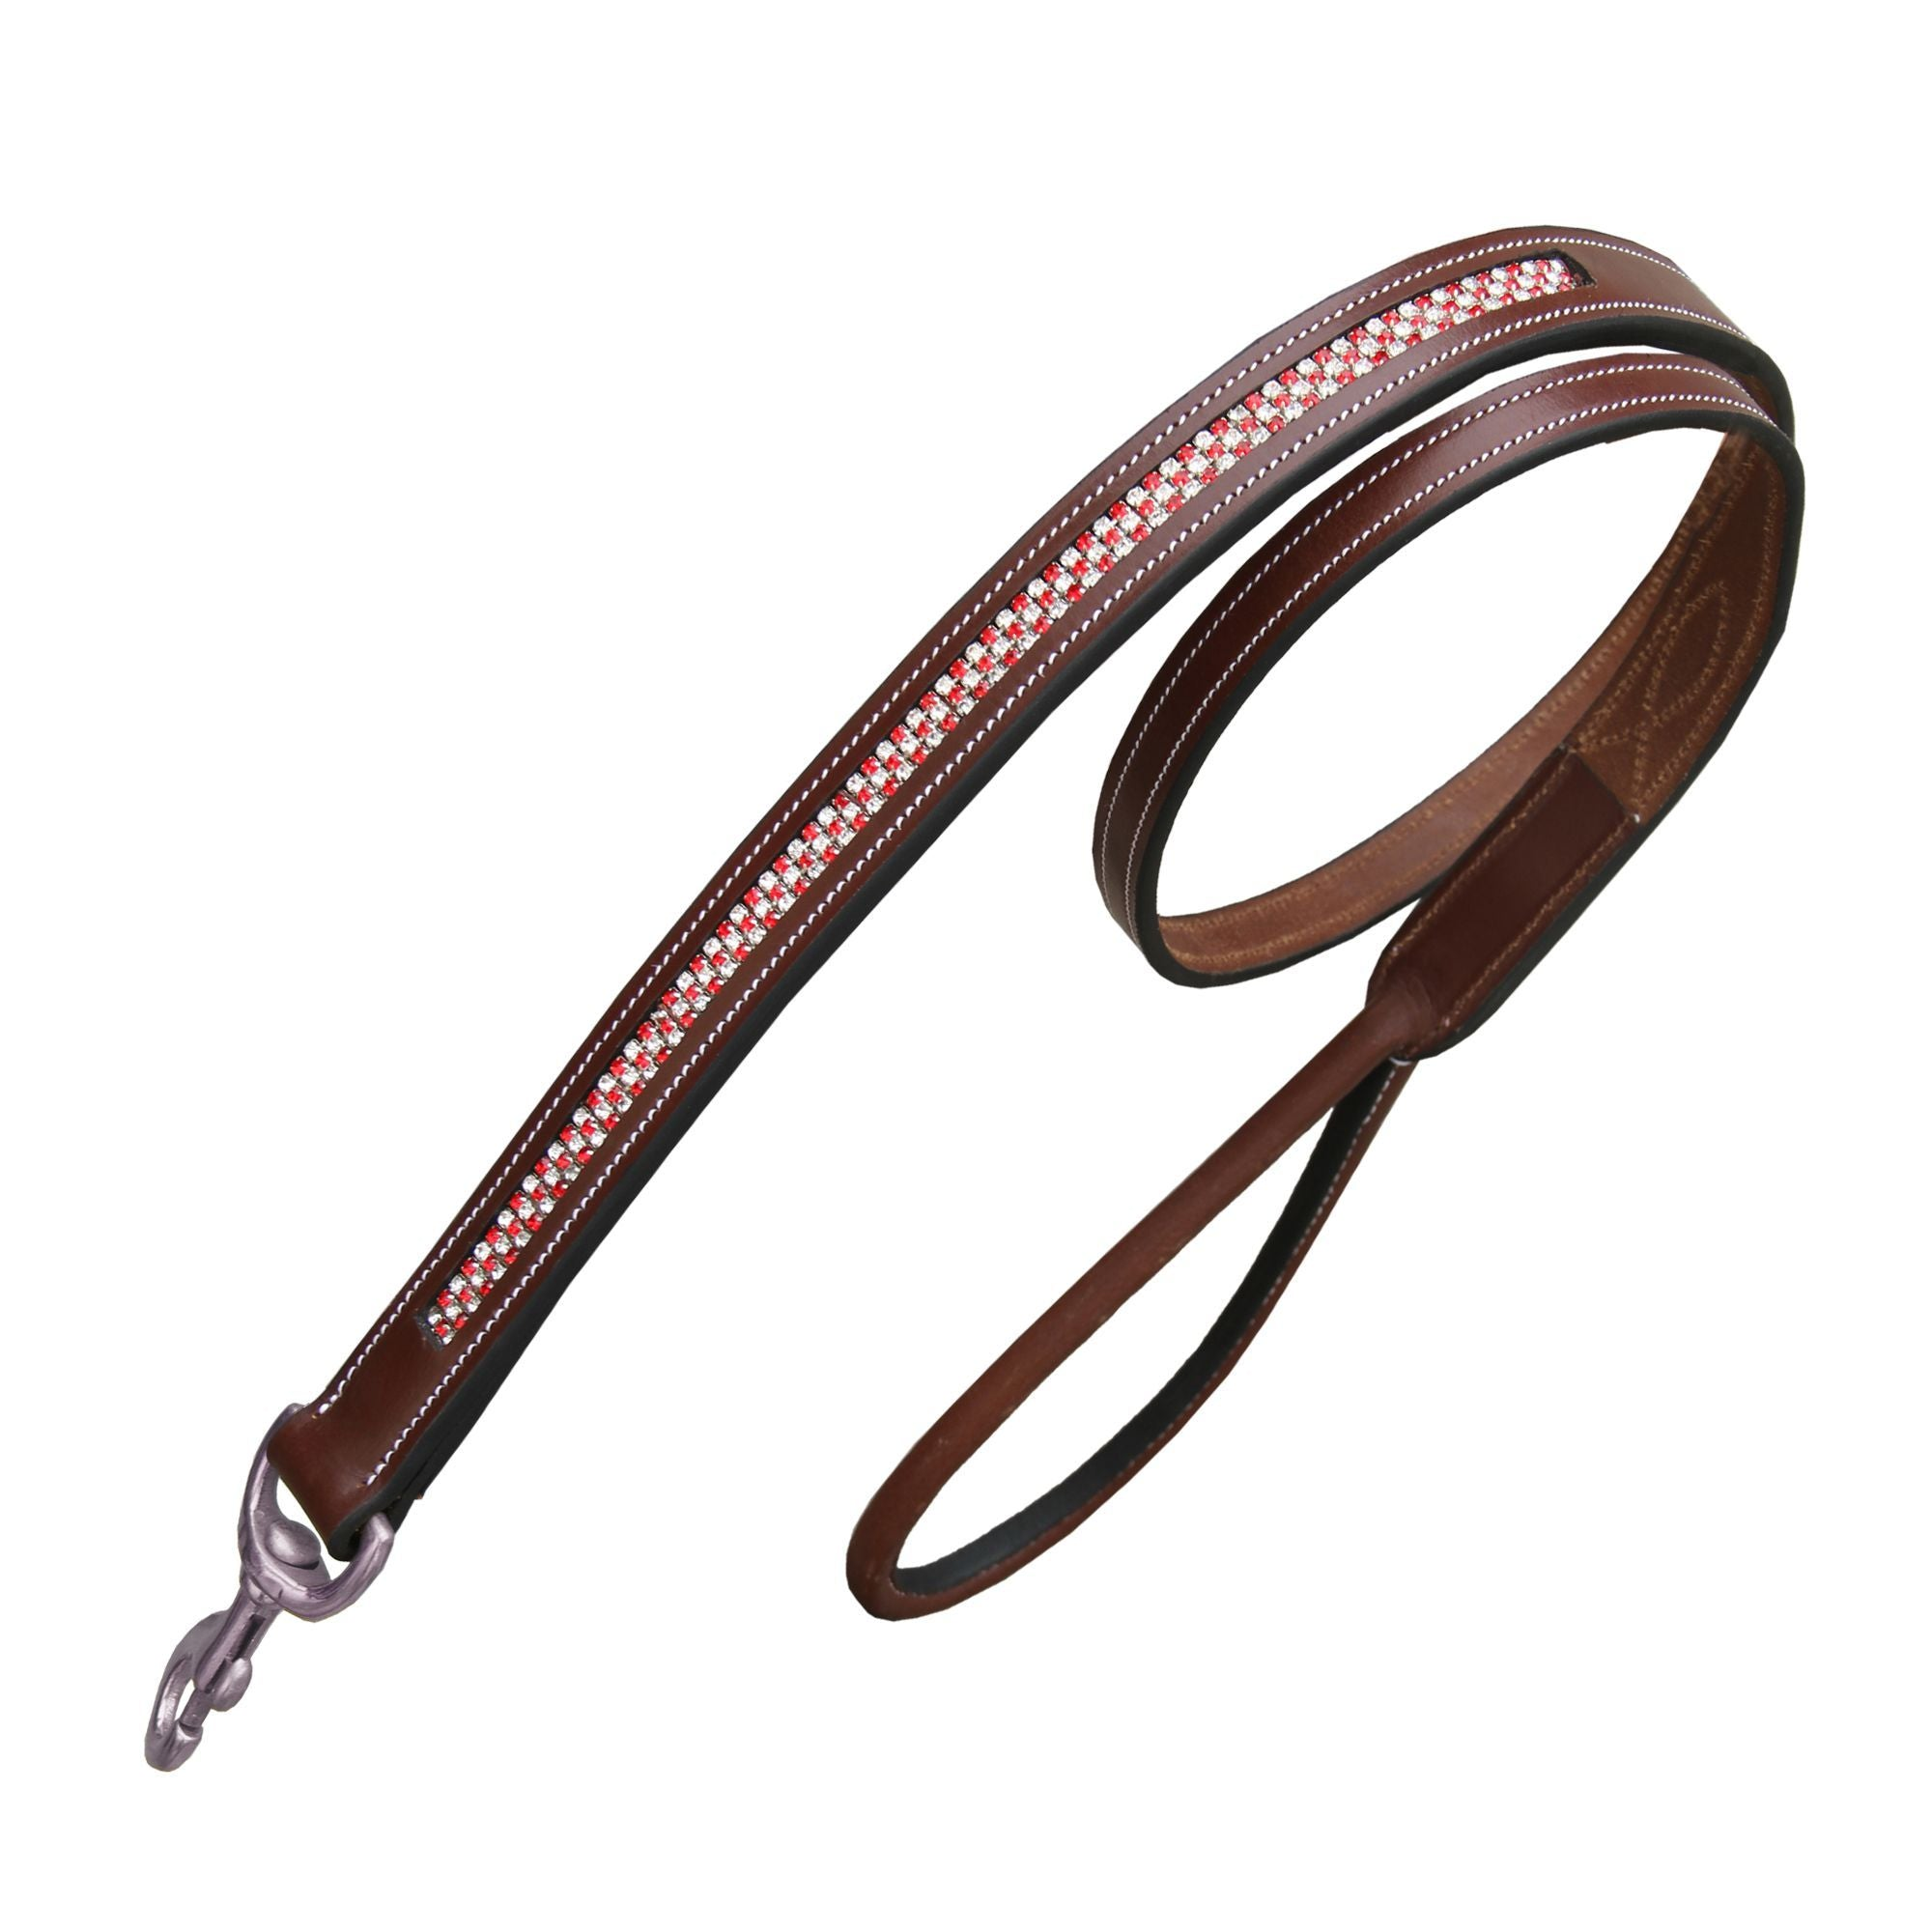 ExionPro Red Bling Padded Dog Lead-Bridles & Reins